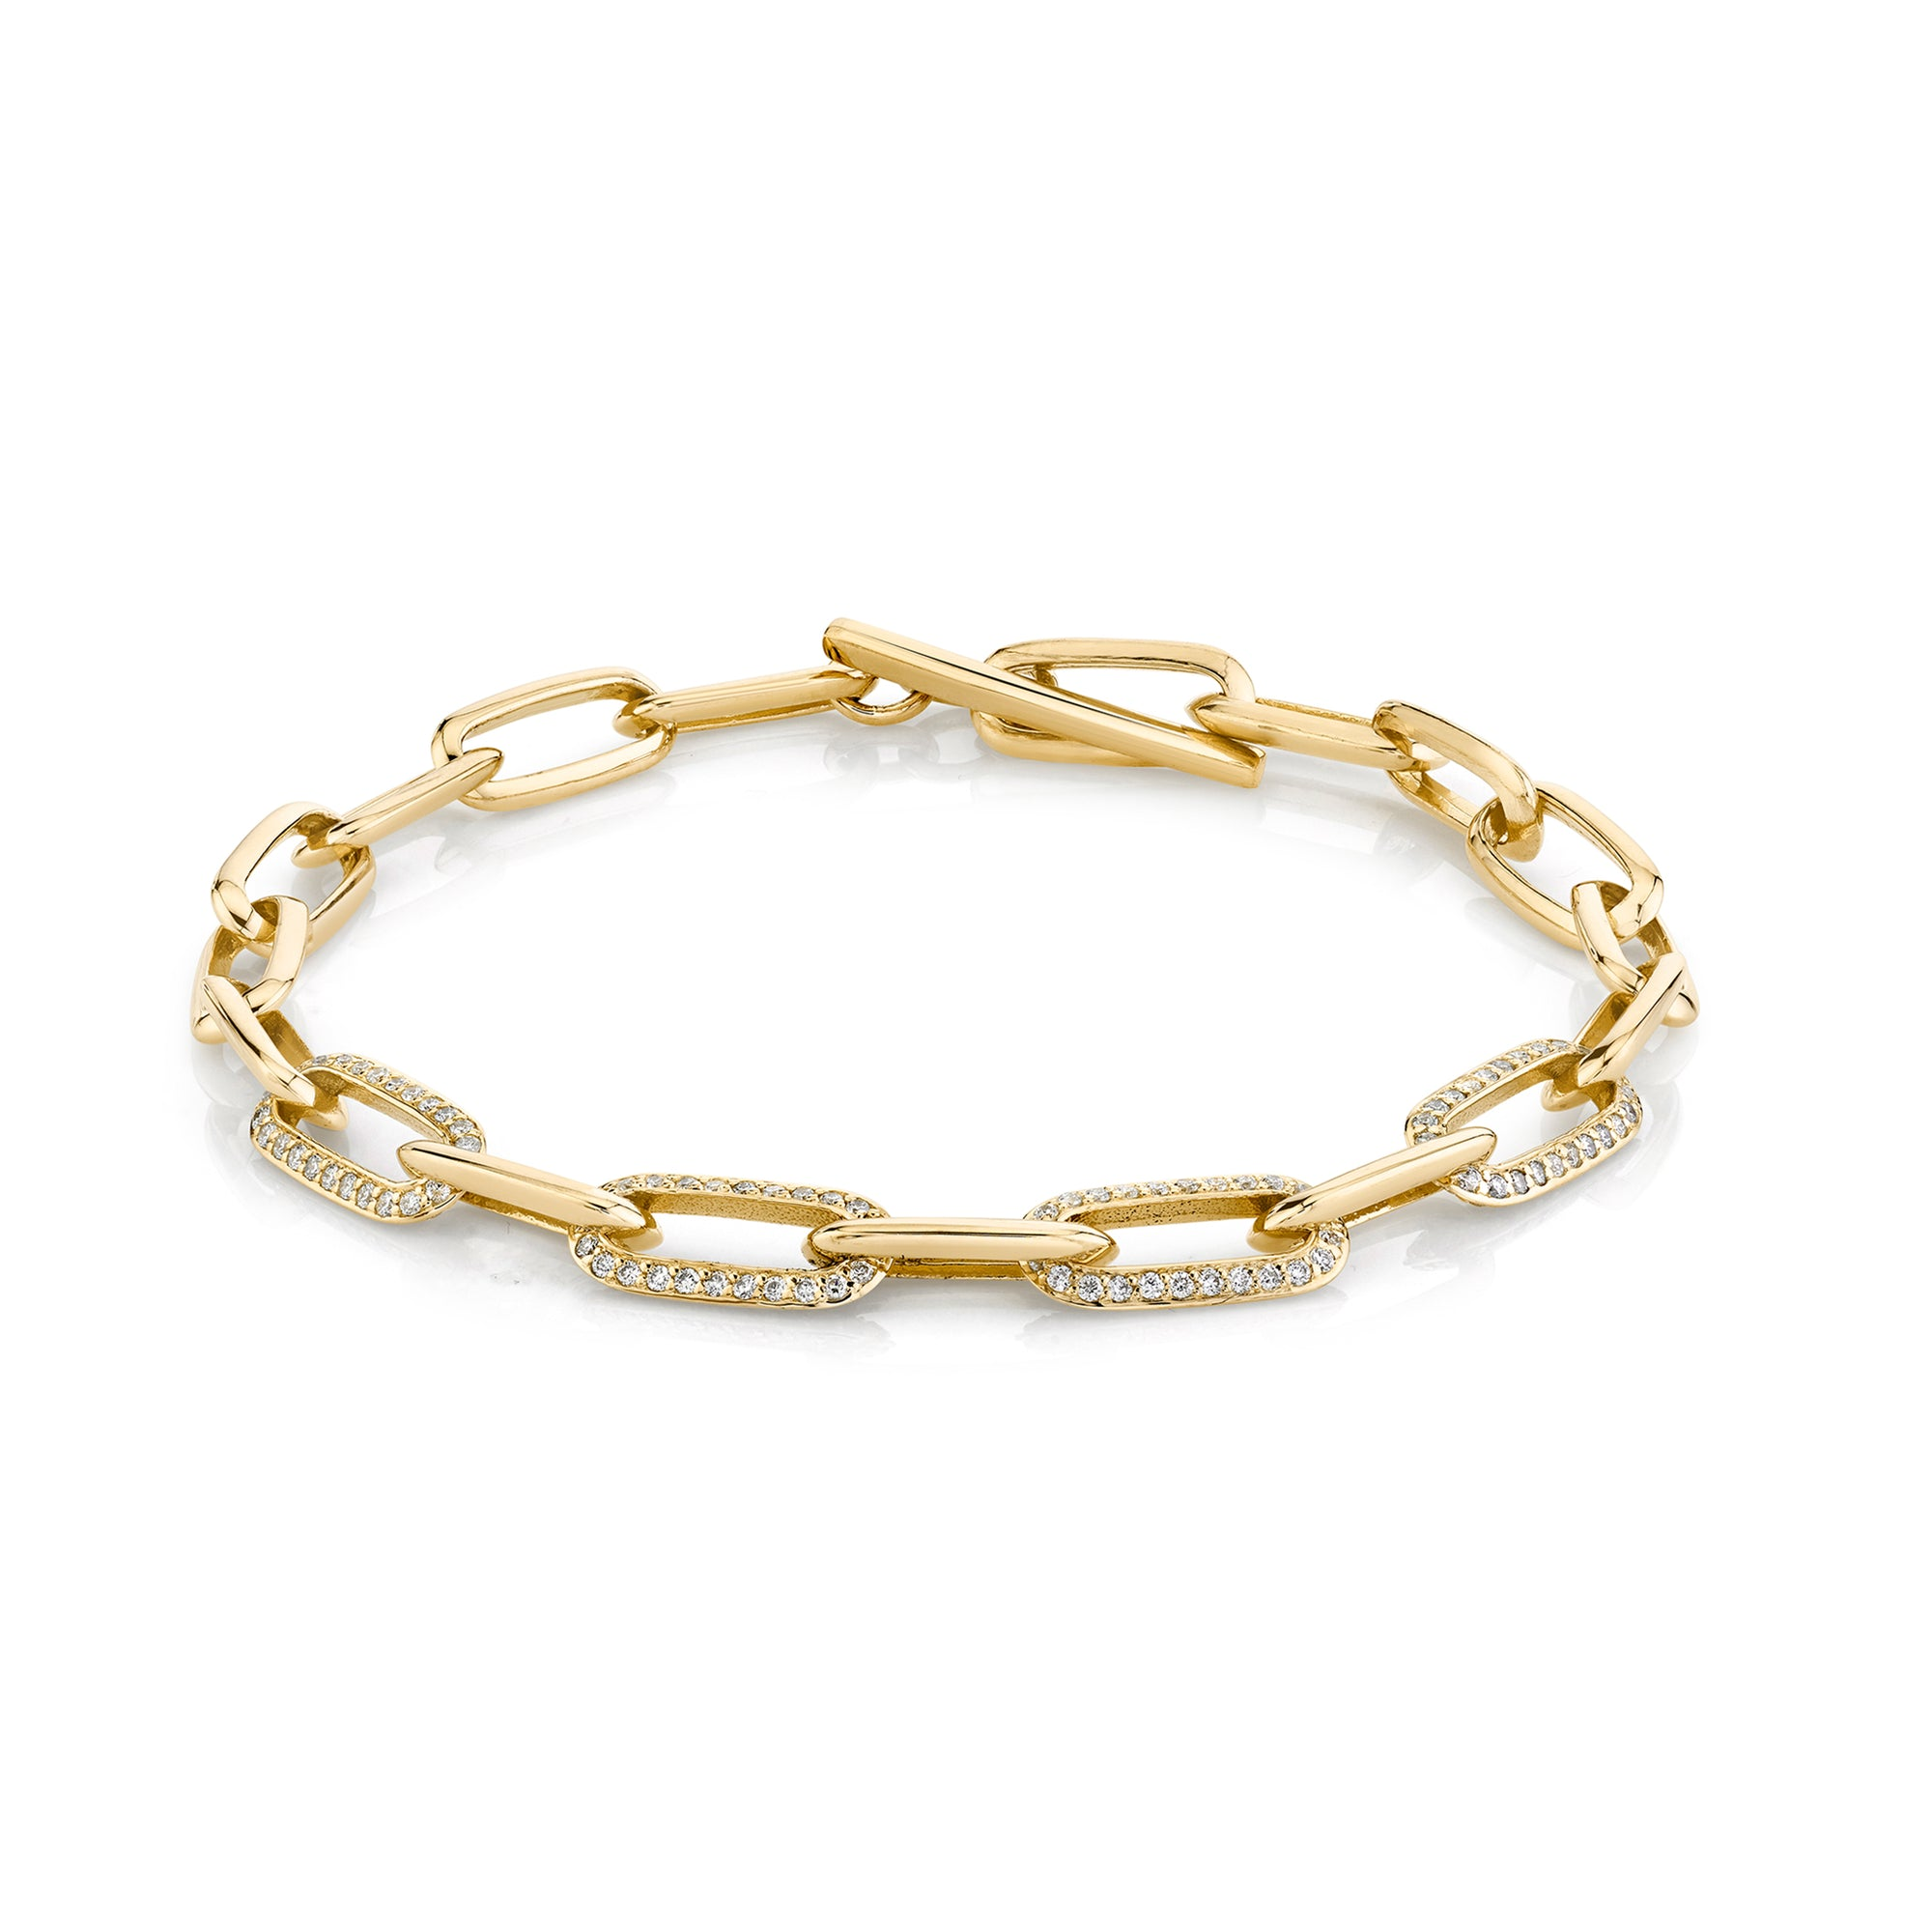 Knife Edge Oval Link Chain Bracelet with Four Alternating Half-Pave Links